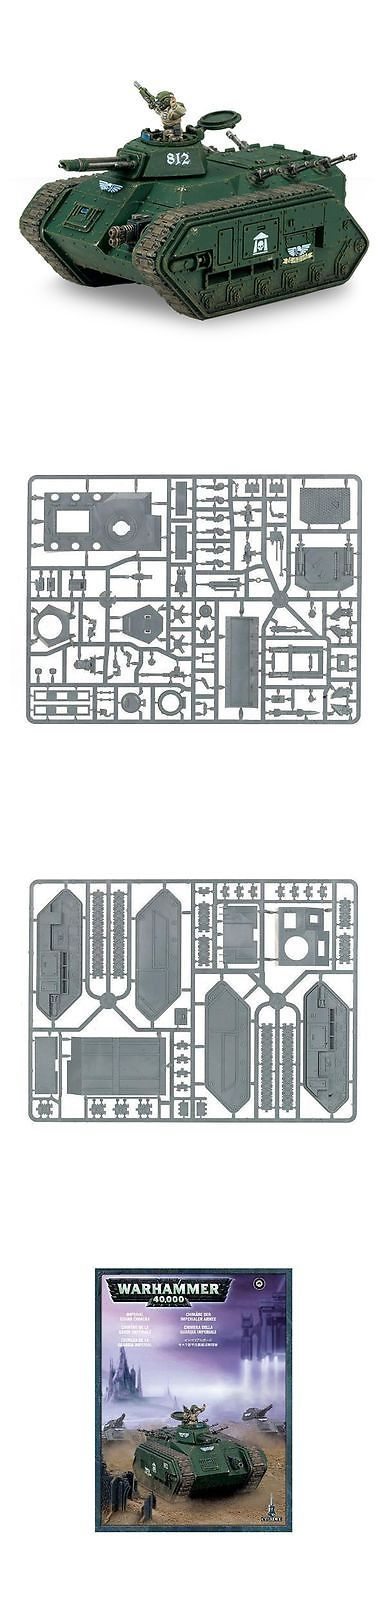 Other 40K Items 31399: *New* Astra Militarum Imperial Guard Chimera Apc Warhammer 40K *Unassembled* -> BUY IT NOW ONLY: $31.66 on eBay!